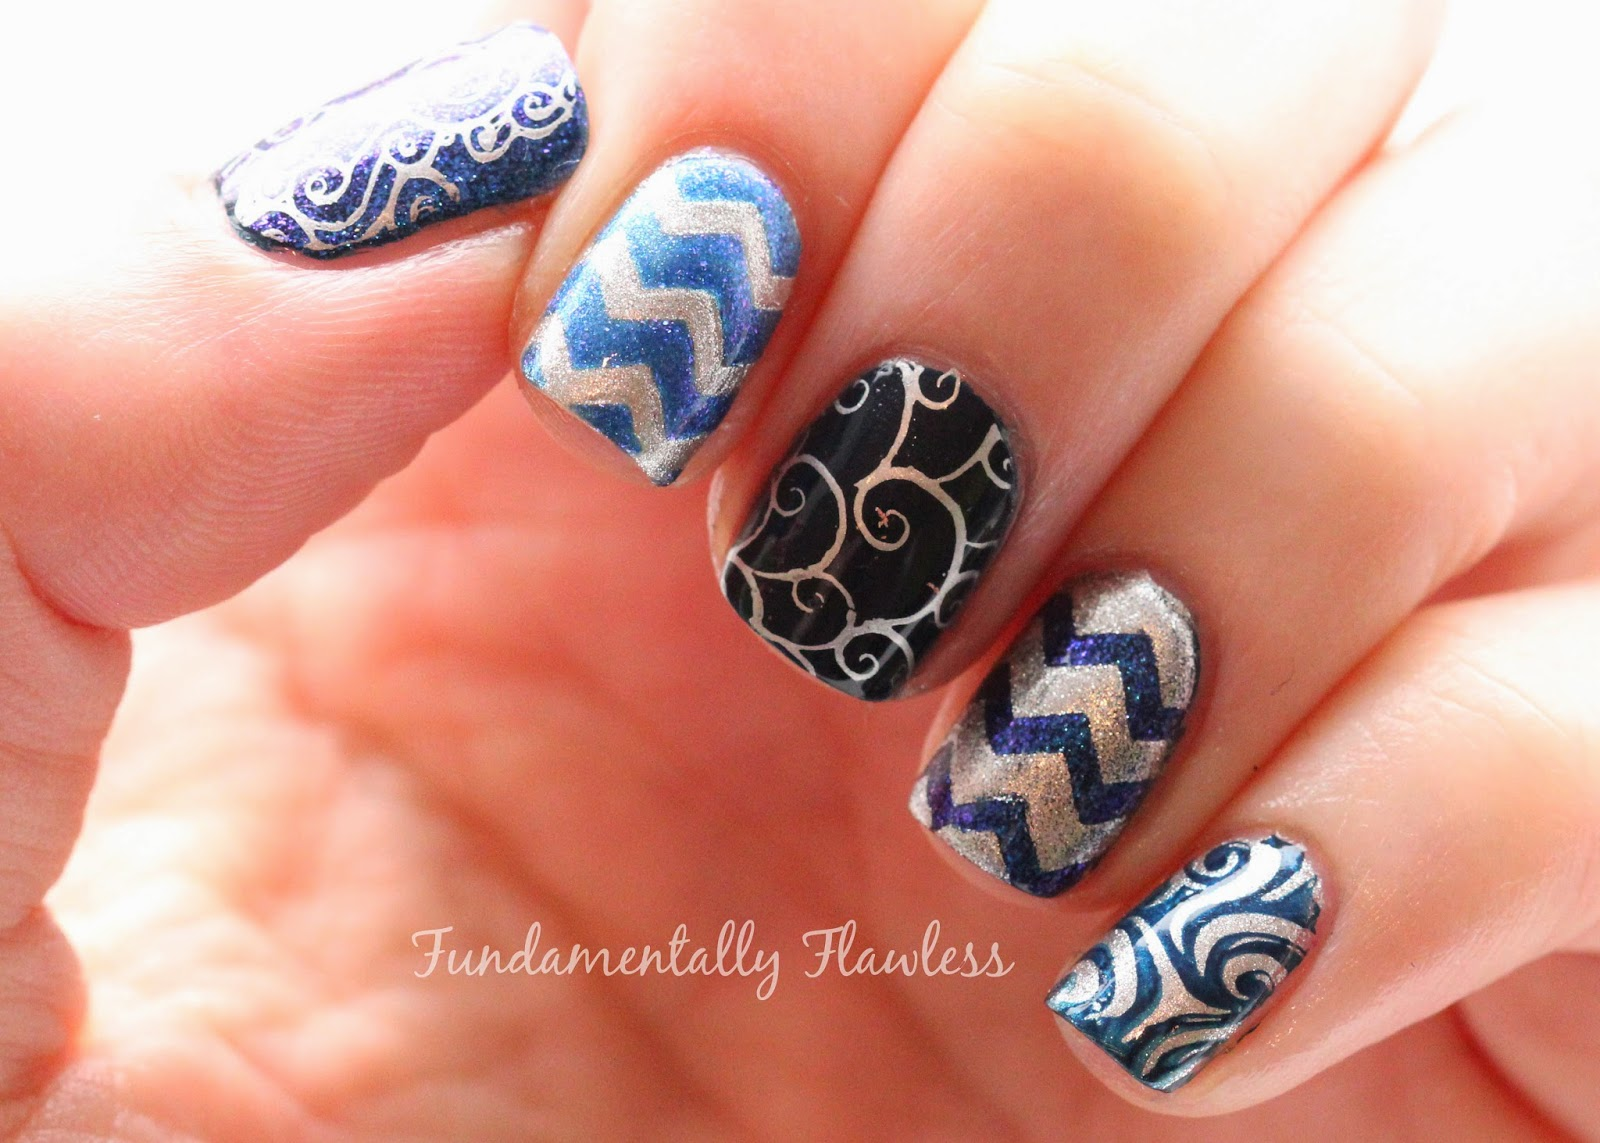 Navy Blue and Silver Nail Art with MoYou Sailor Collection 03 and Nail Vinyls